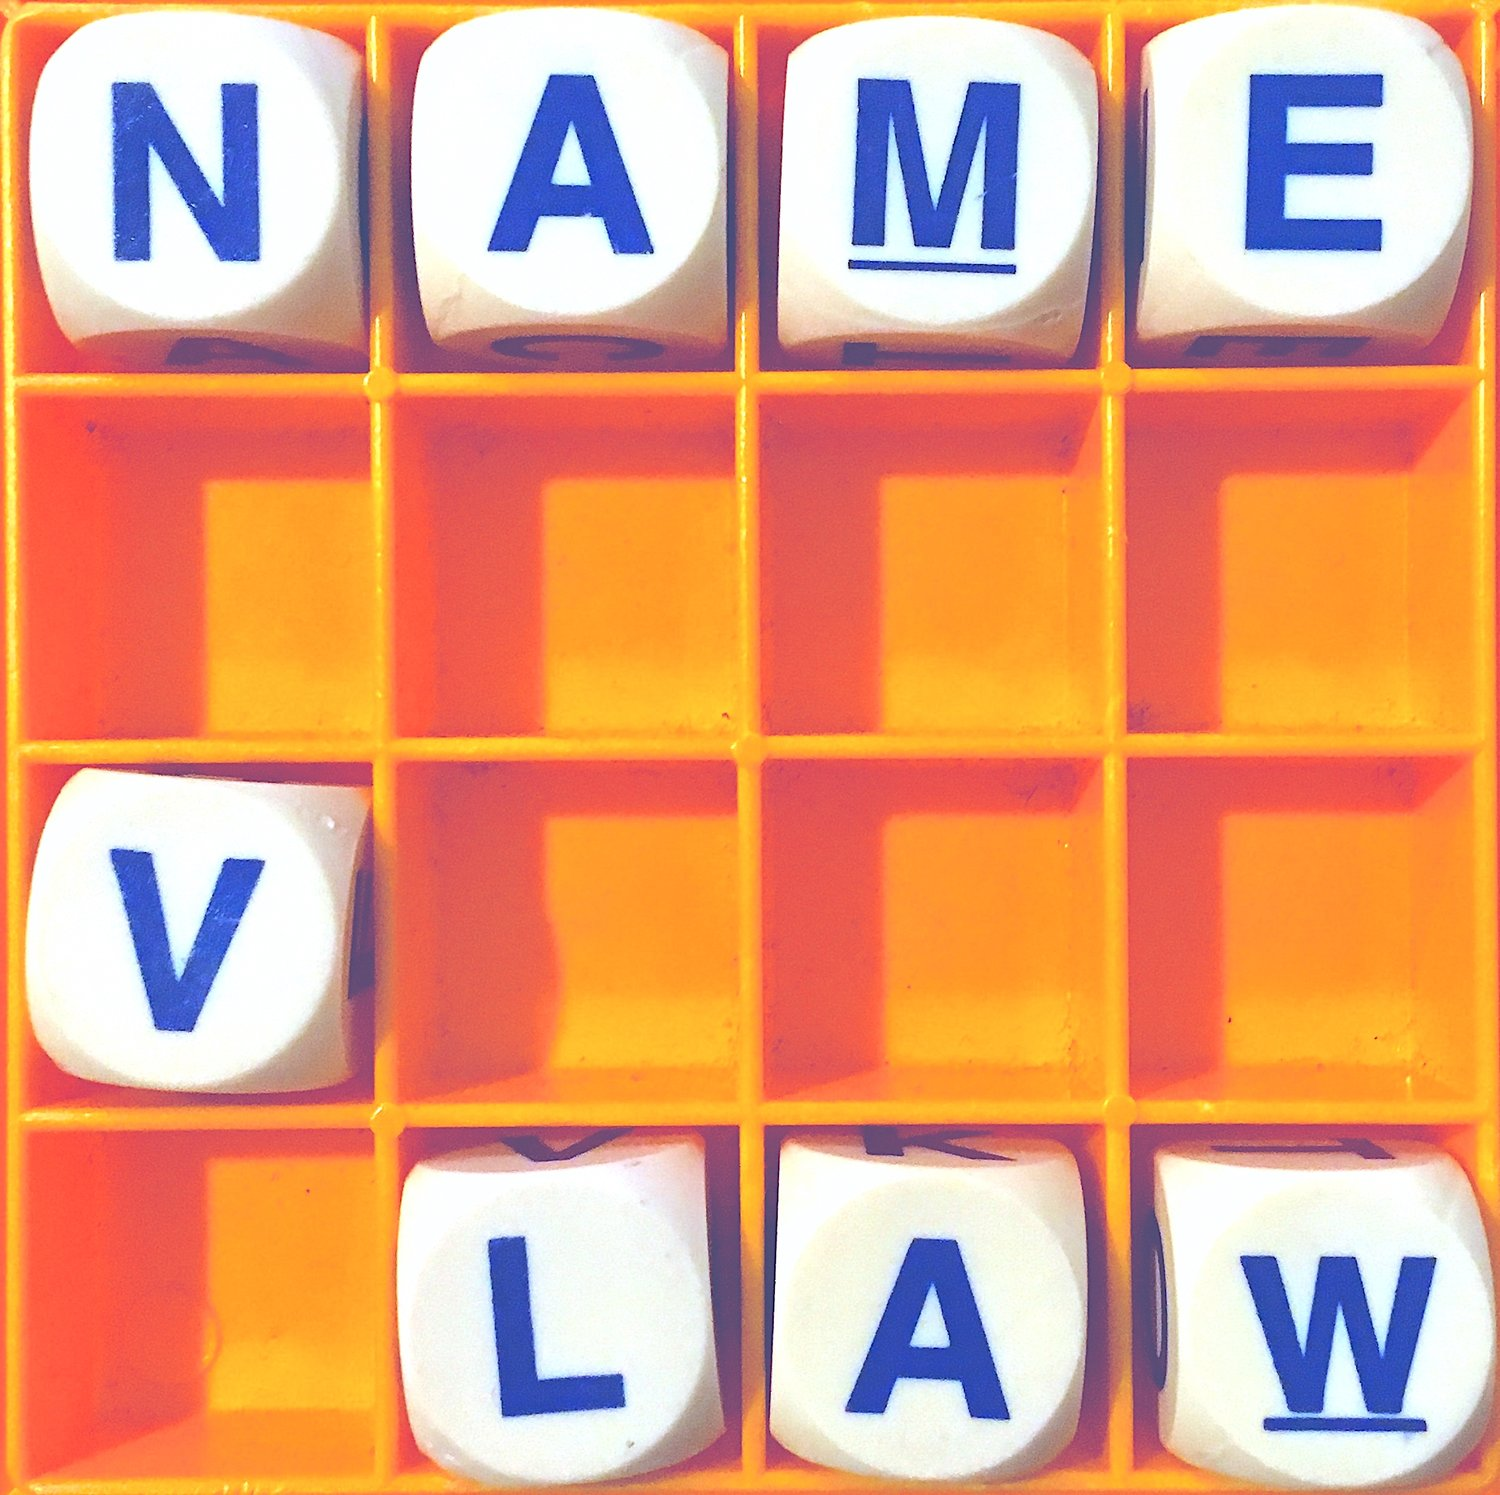 A87+Name+v+Law+logo.jpg